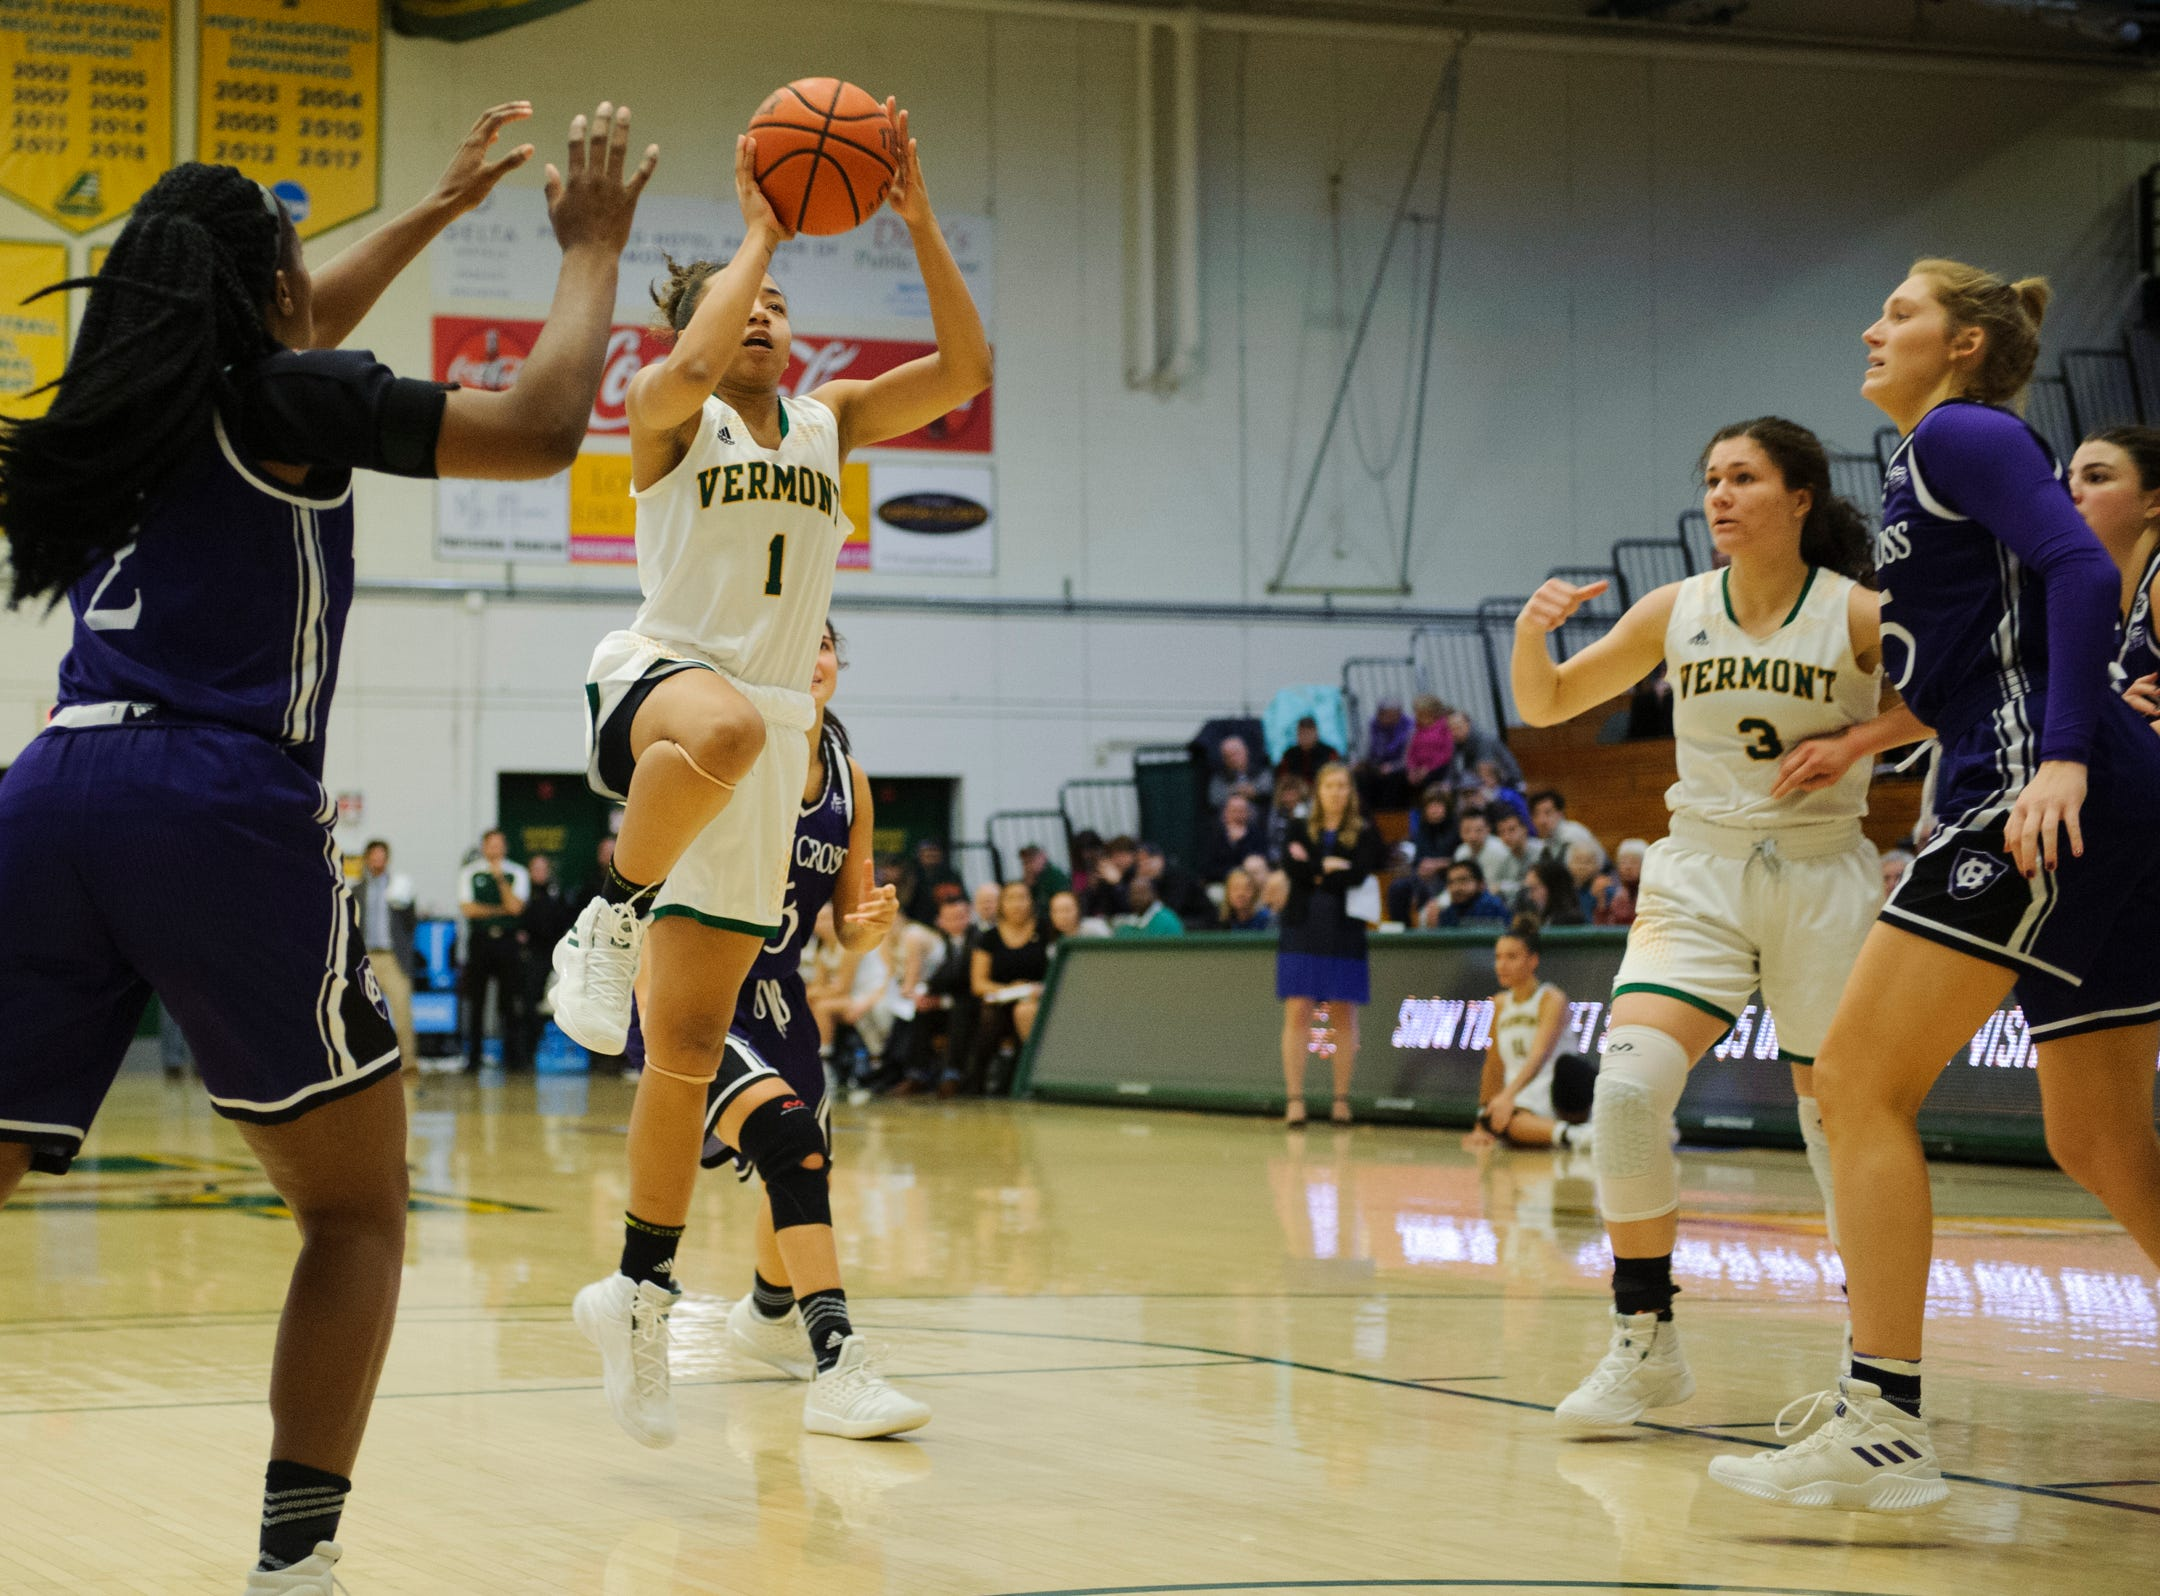 Vermont's Asha Scott (1) leaps to take a shot during the women's basketball game between the Holy Cross Crusaders and the Vermont Catamounts at Patrick Gym on Wednesday night November 28, 2018 in Burlington.